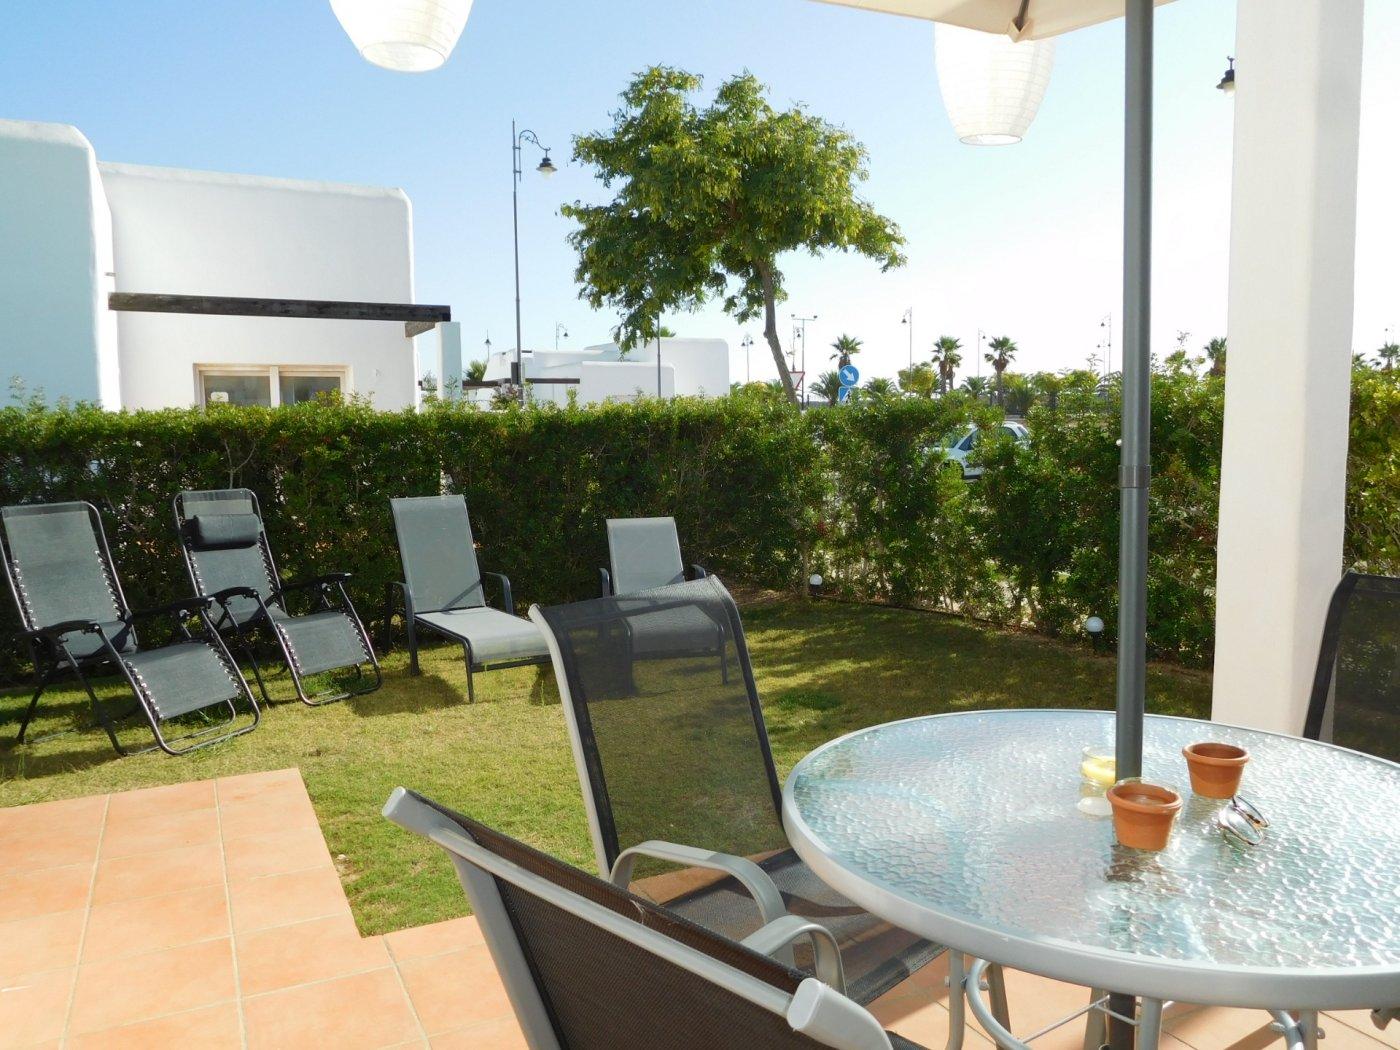 Gallery Image 21 of Casa For rent in Condado De Alhama, Alhama De Murcia With Pool